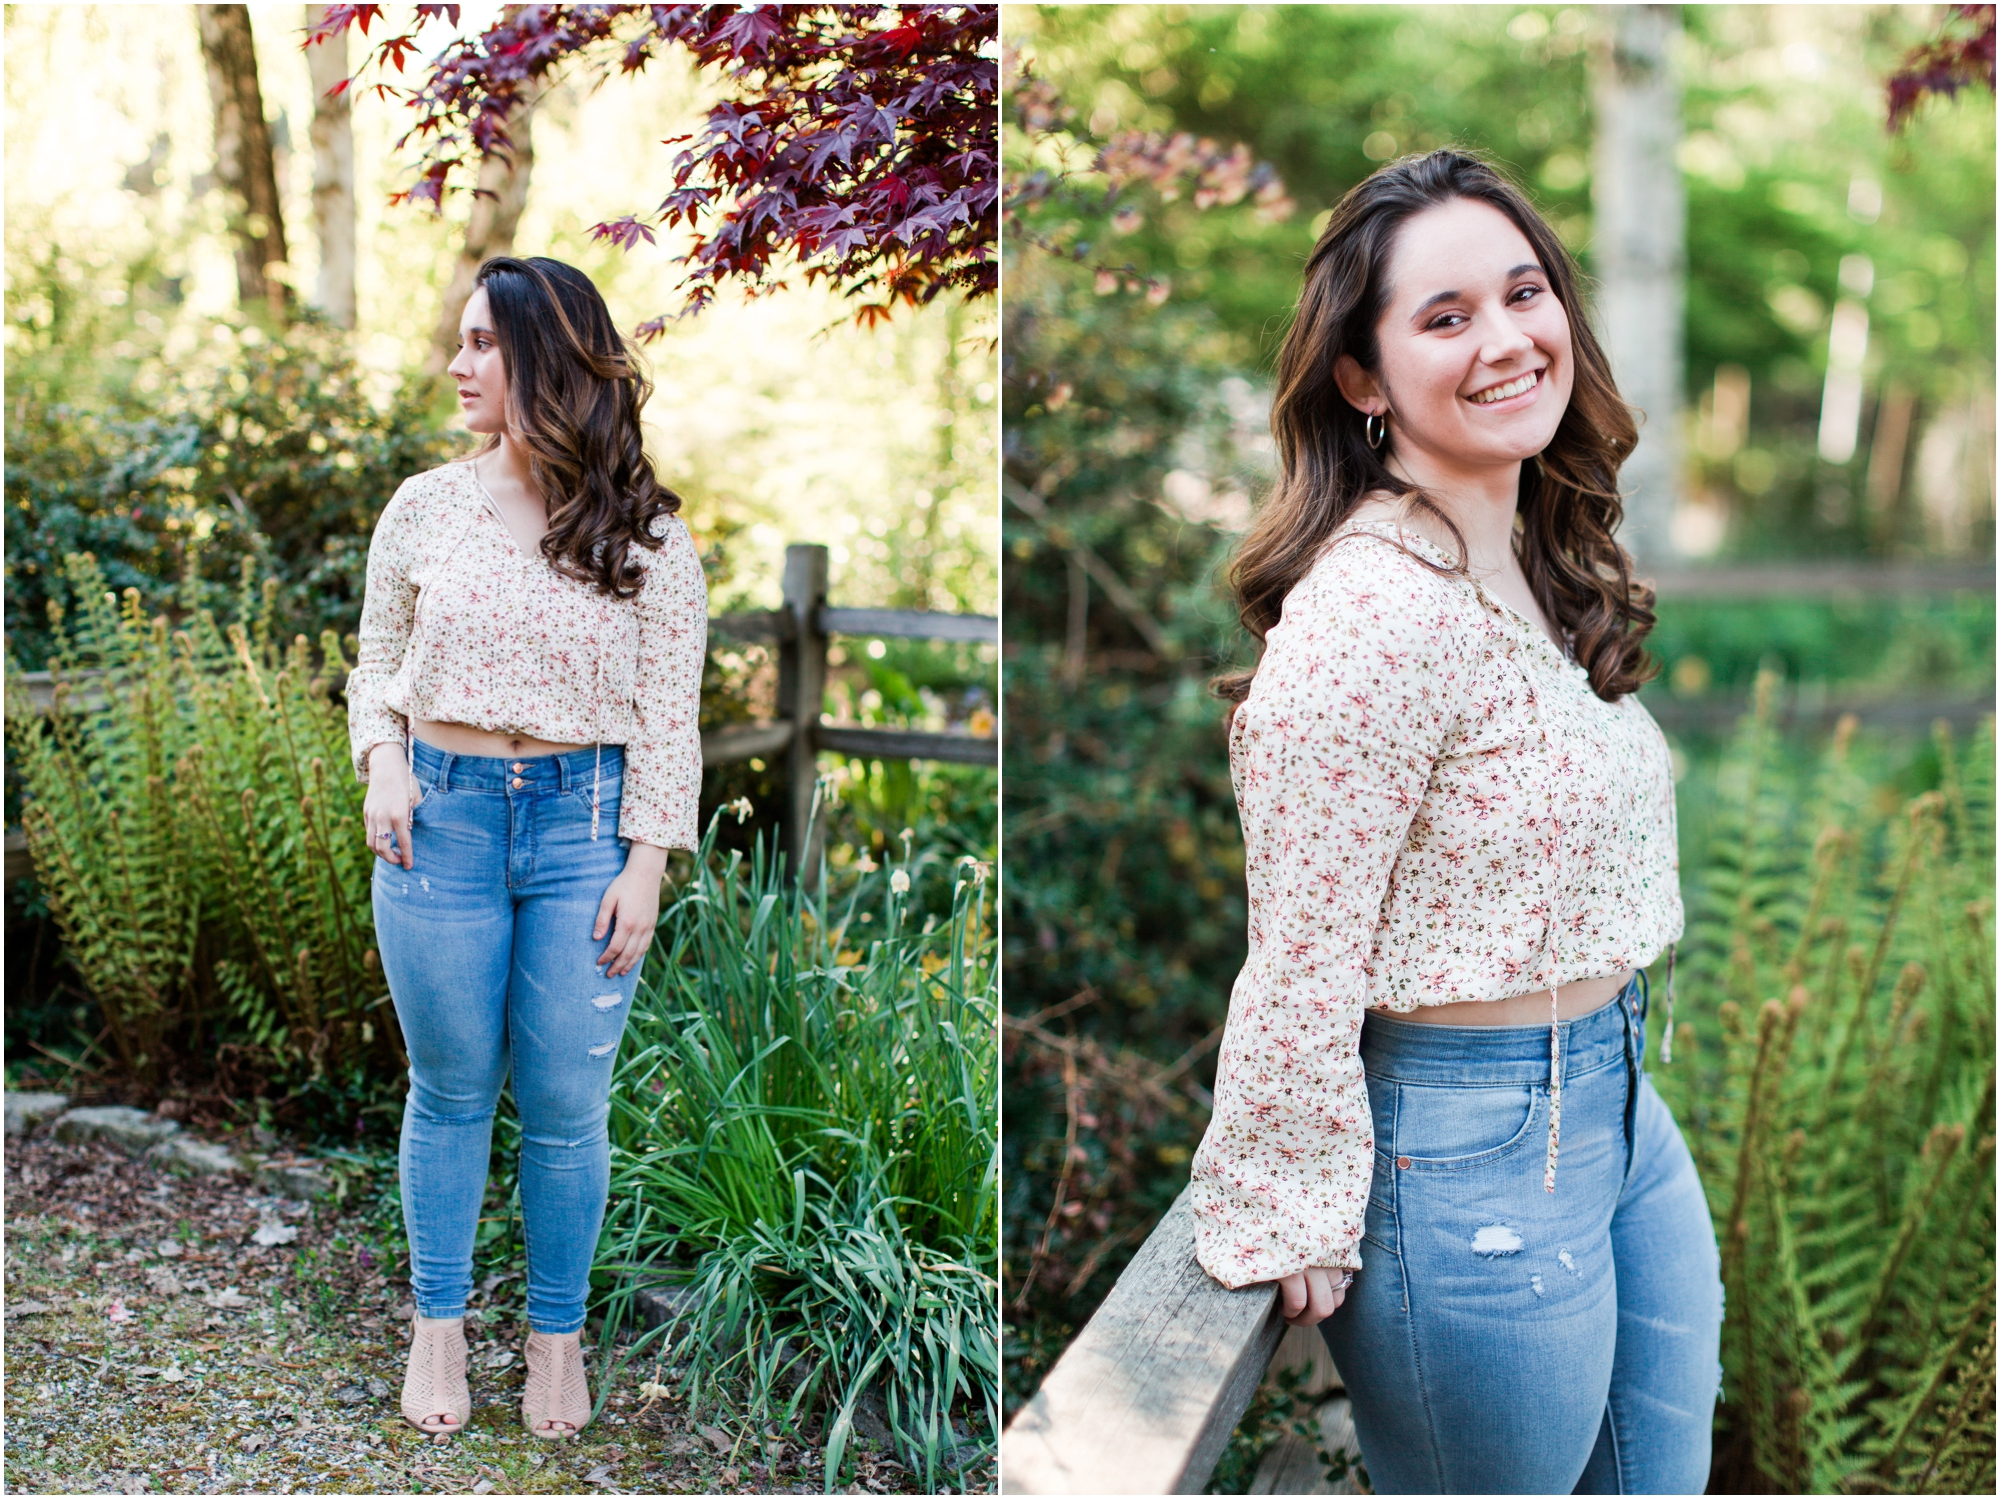 Senior Portraits at Point Defiance Park in Tacoma.  Photos by Briana Calderon Photography based in the greater Seattle Tacoma Area._1102.jpg